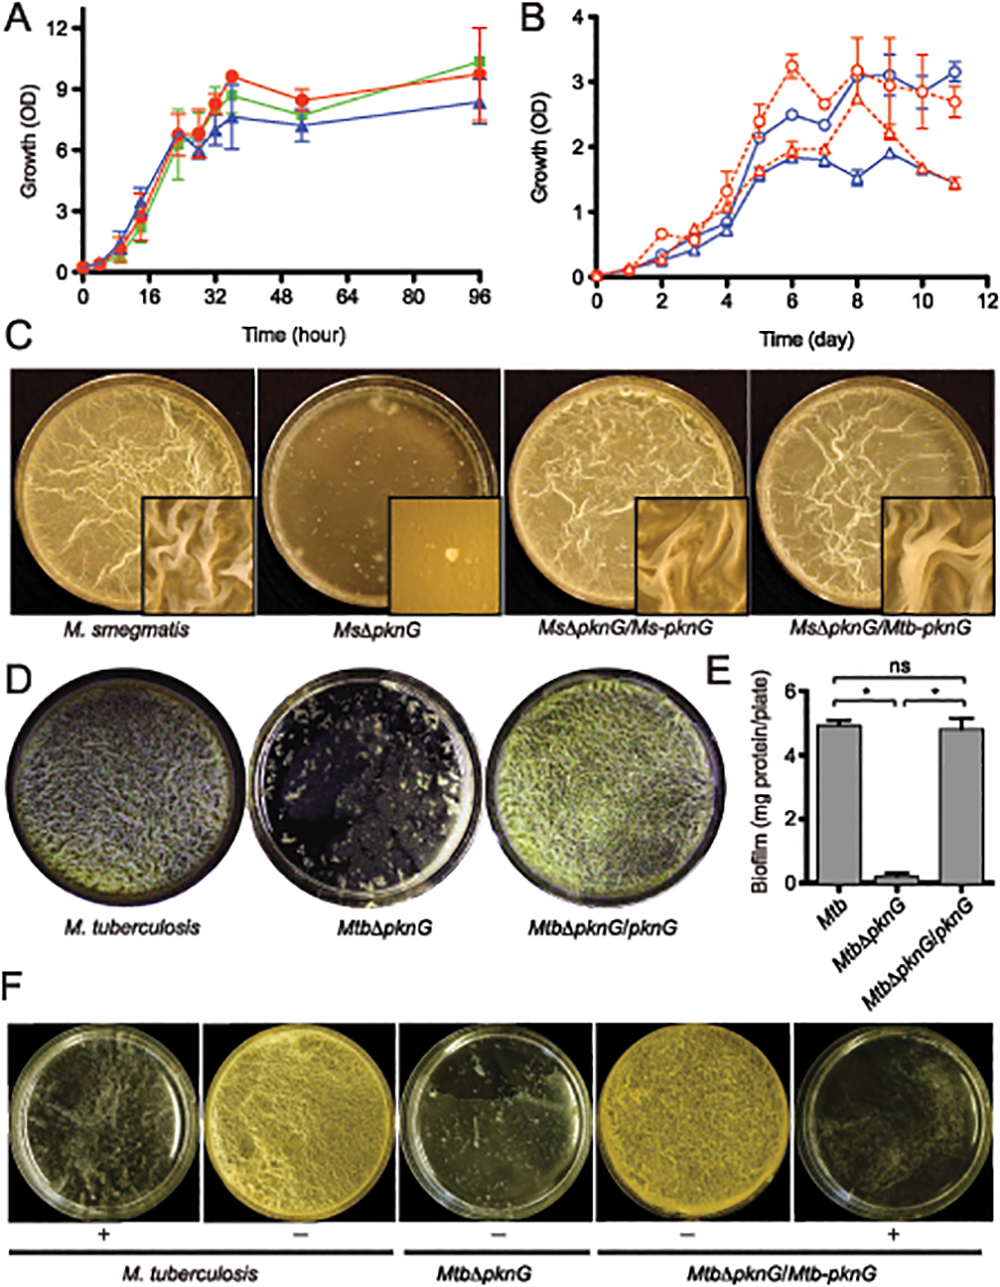 PknG kinase activity is required for biofilm growth in mycobacteria.